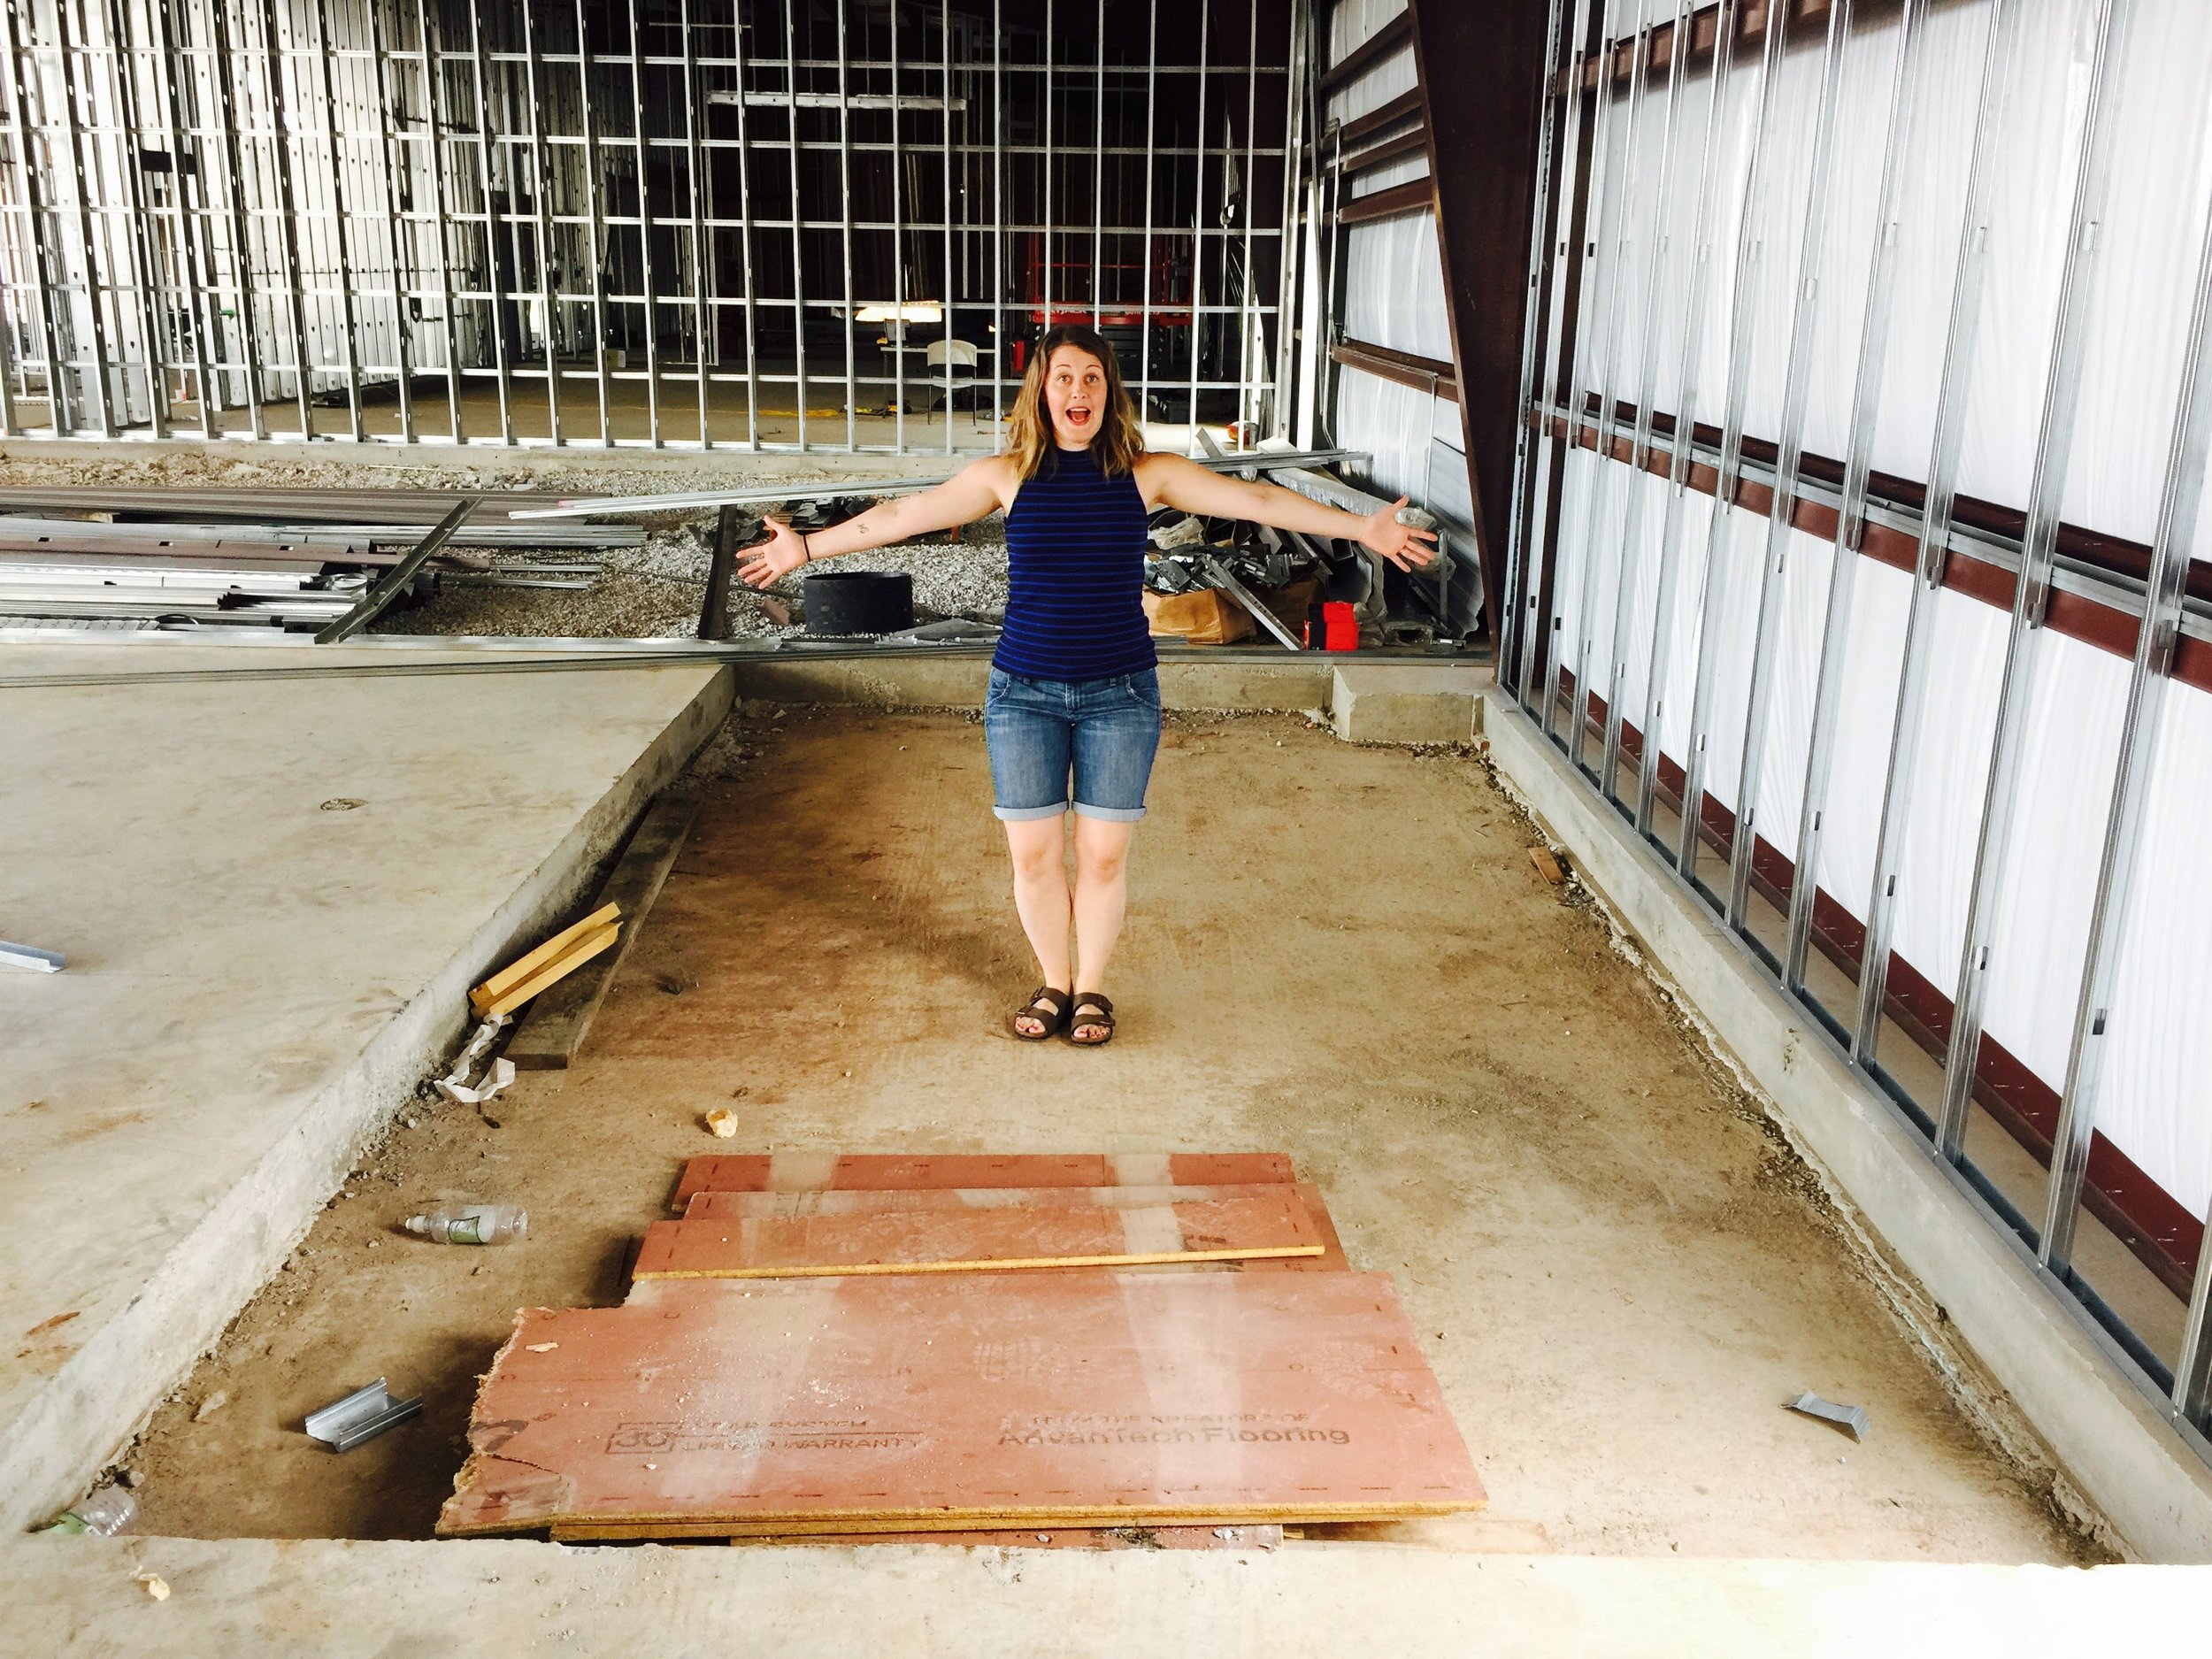 The space for our walk-in cooler and freezer. Finally had a chance to see, in person, how big this space would be!